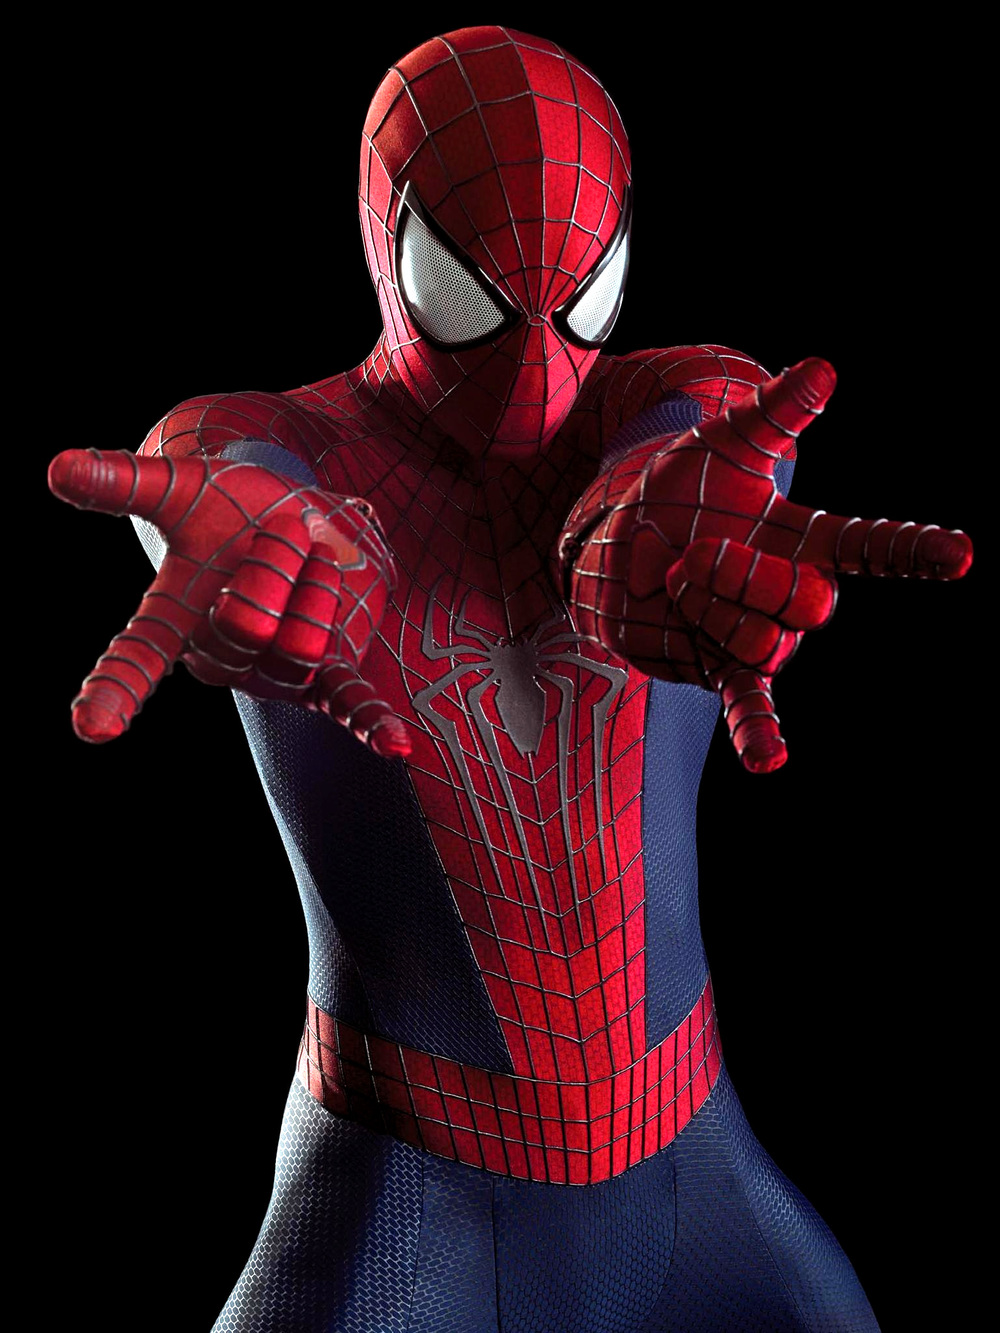 THE AMAZING SPIDER-MAN 2 - New Details on Spidey's Suit ...